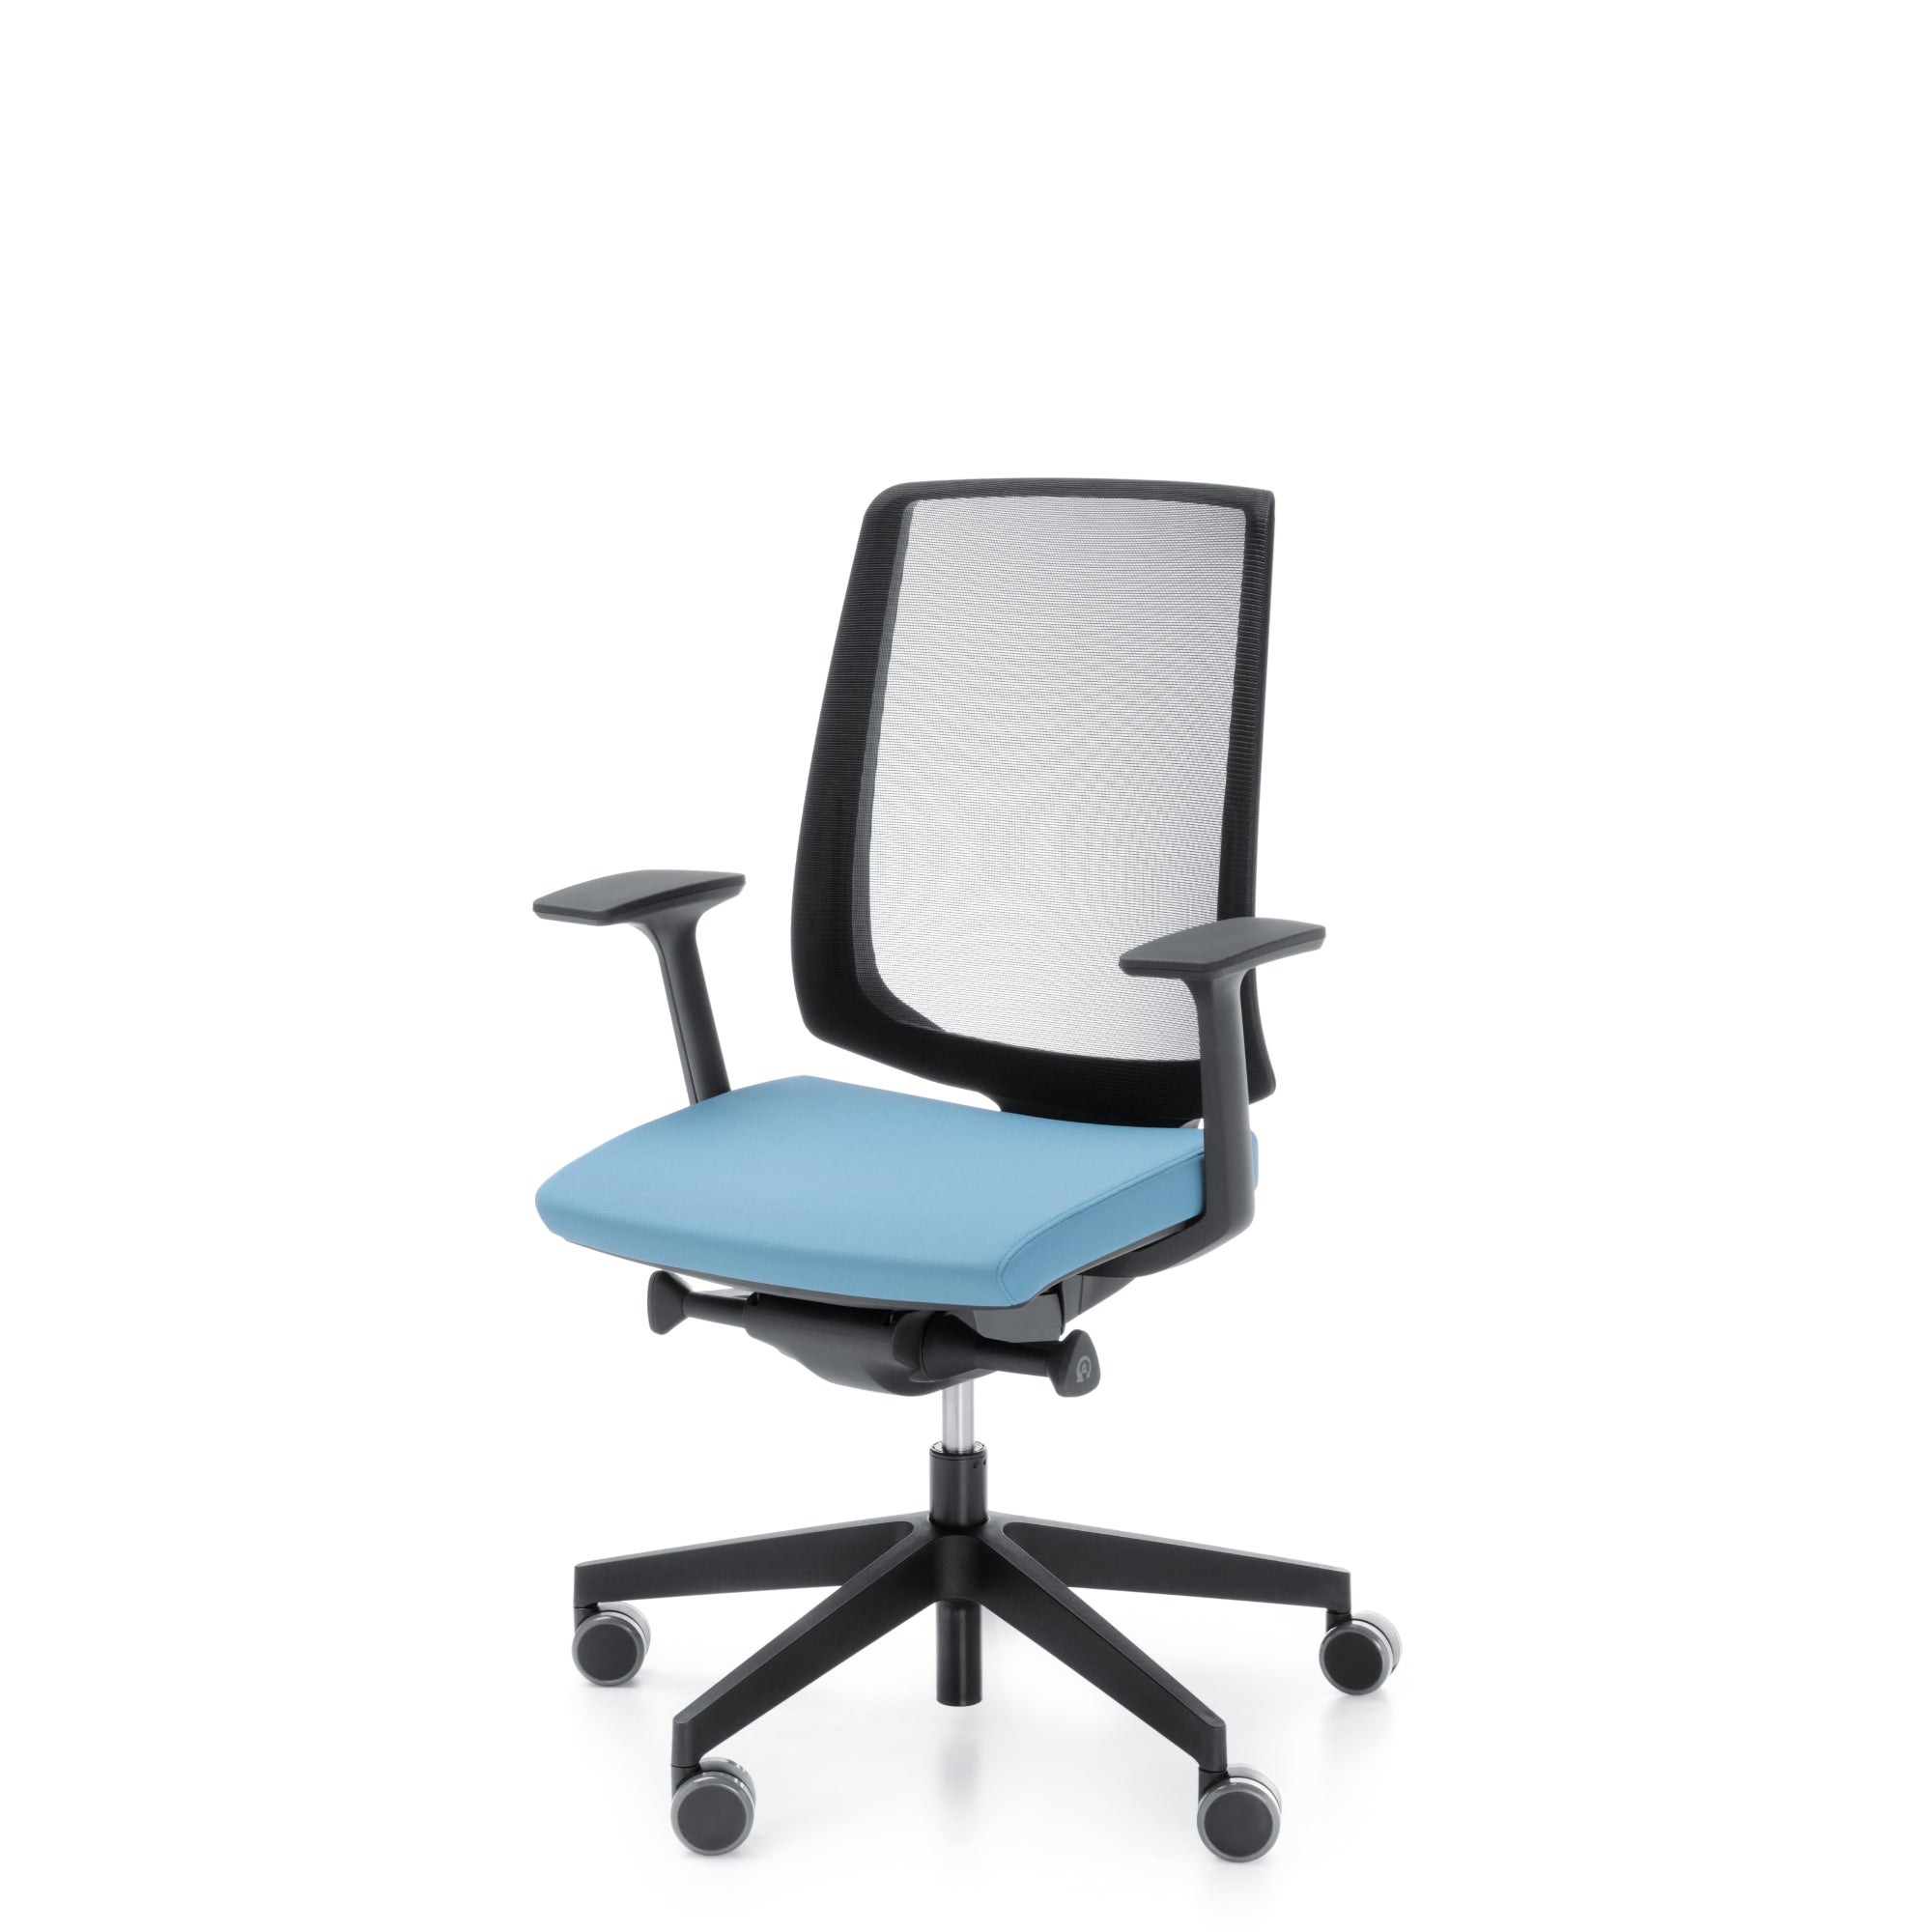 Spacestor LightUp Office Task Chair Mesh Back